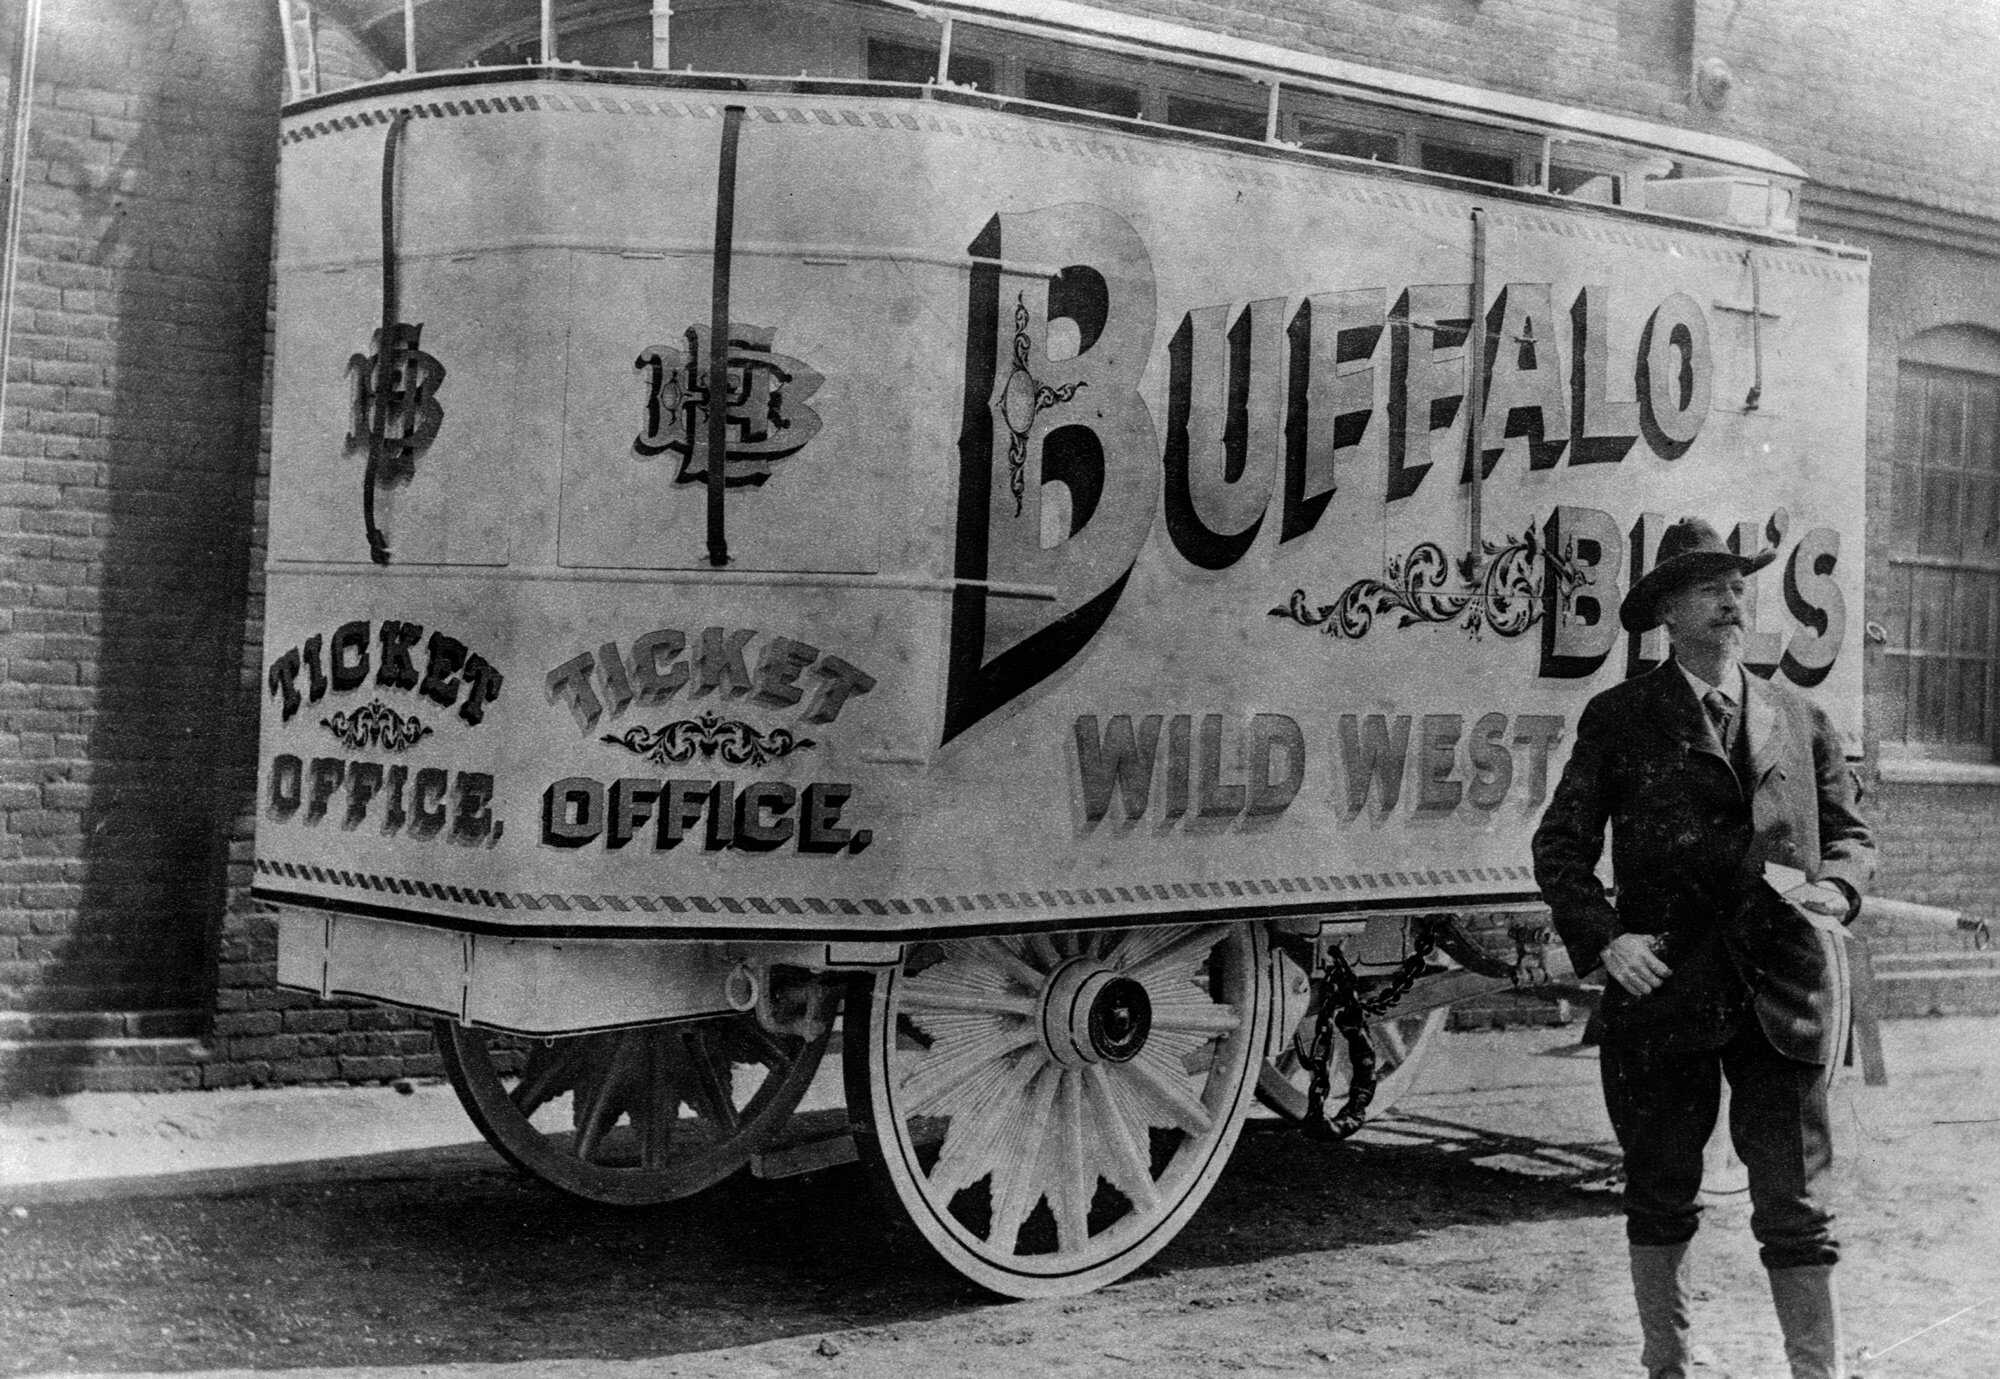 The life of annie oakley american experience official site pbs - Buffalo bills ticket office ...